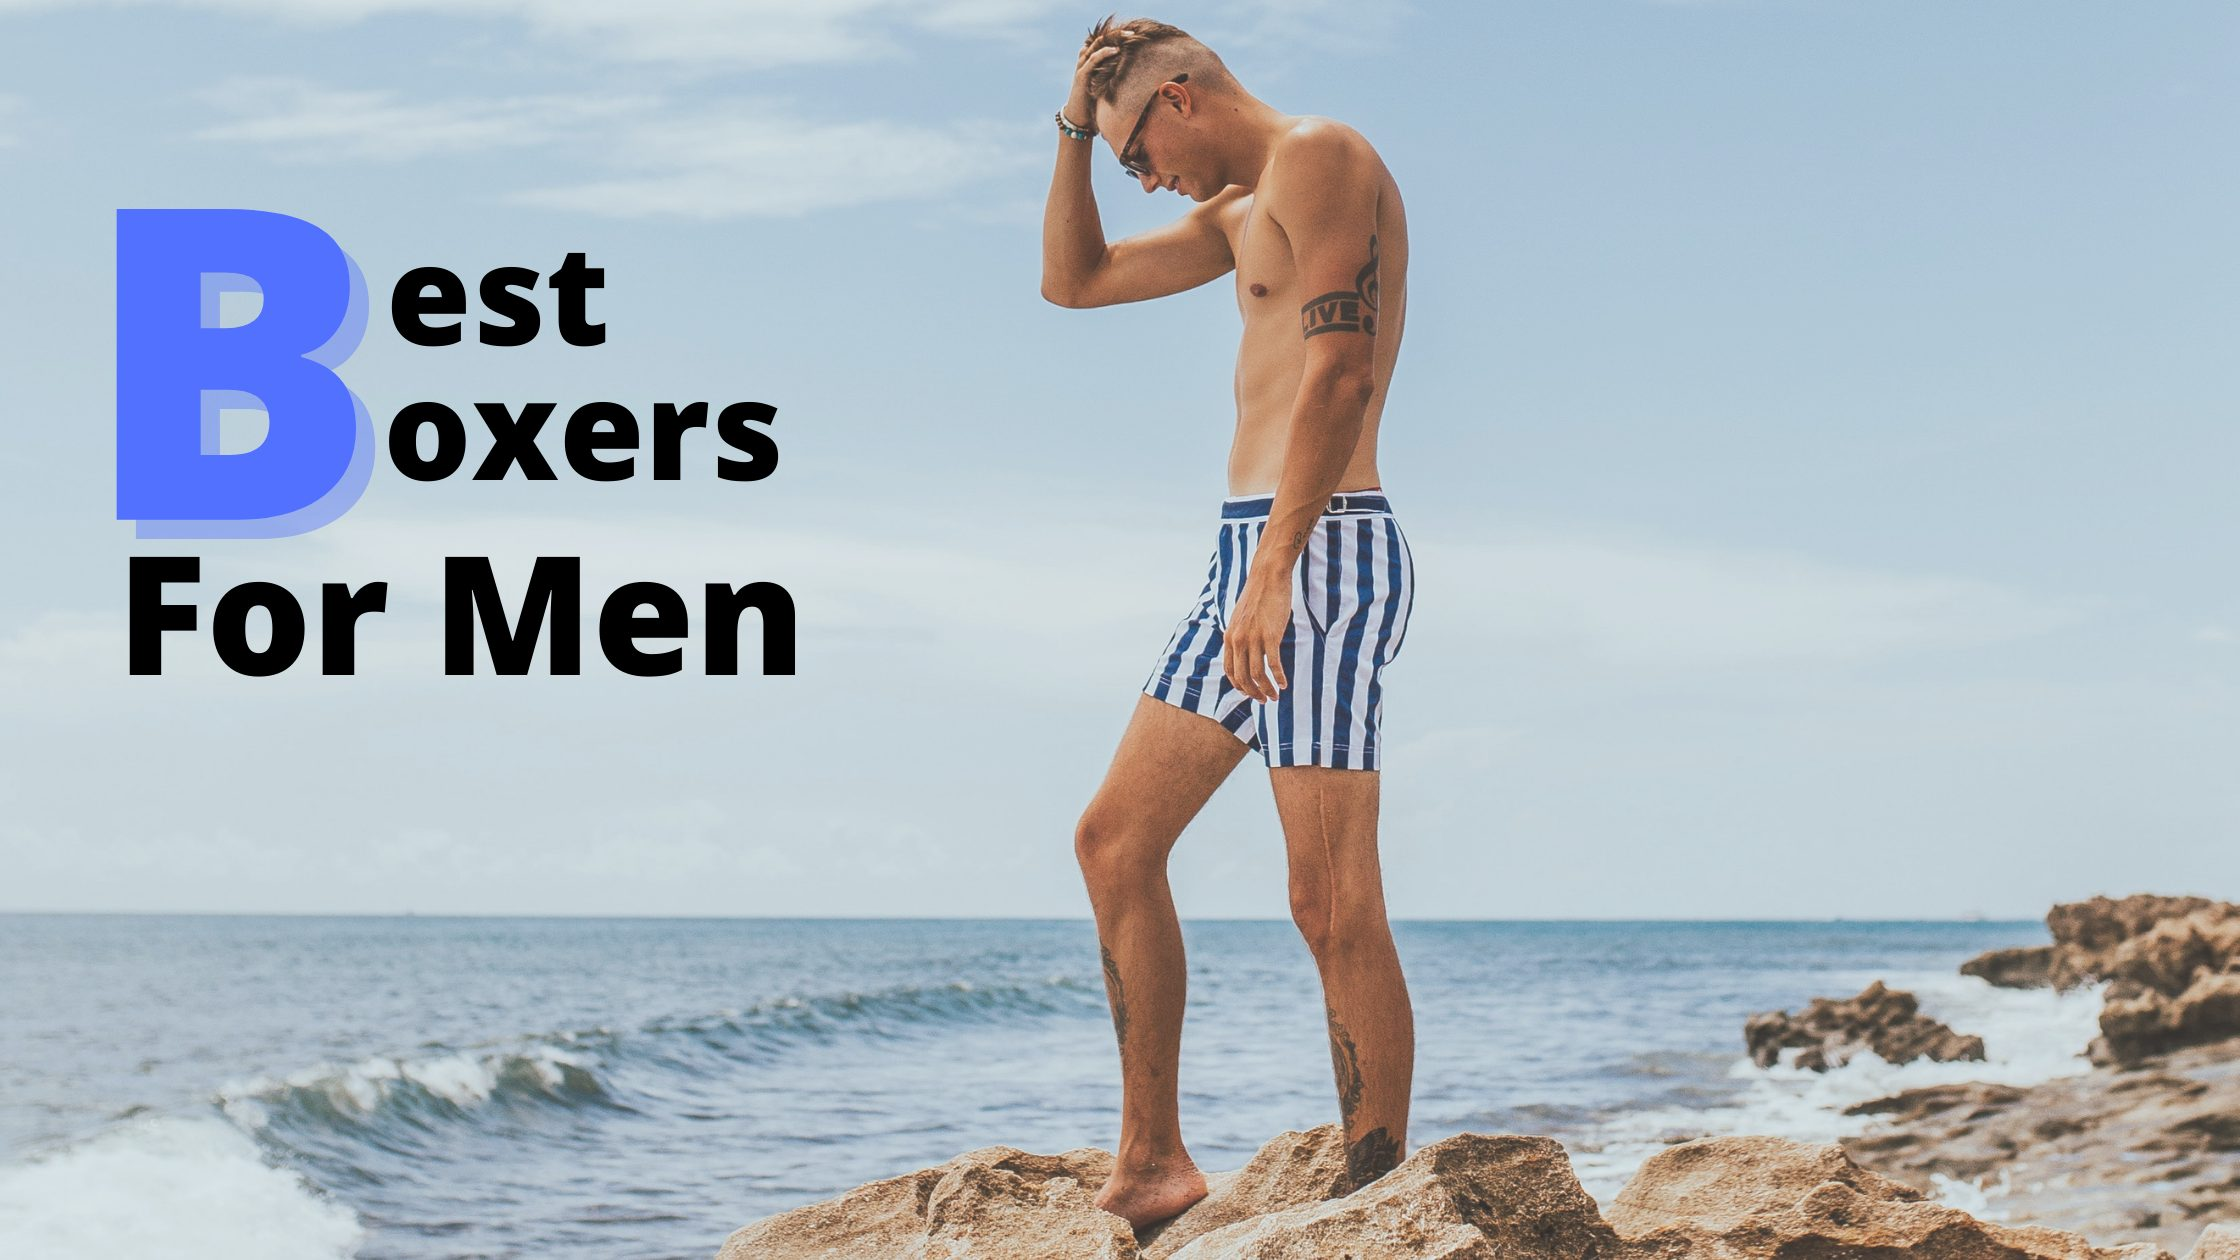 Best Boxers For Men